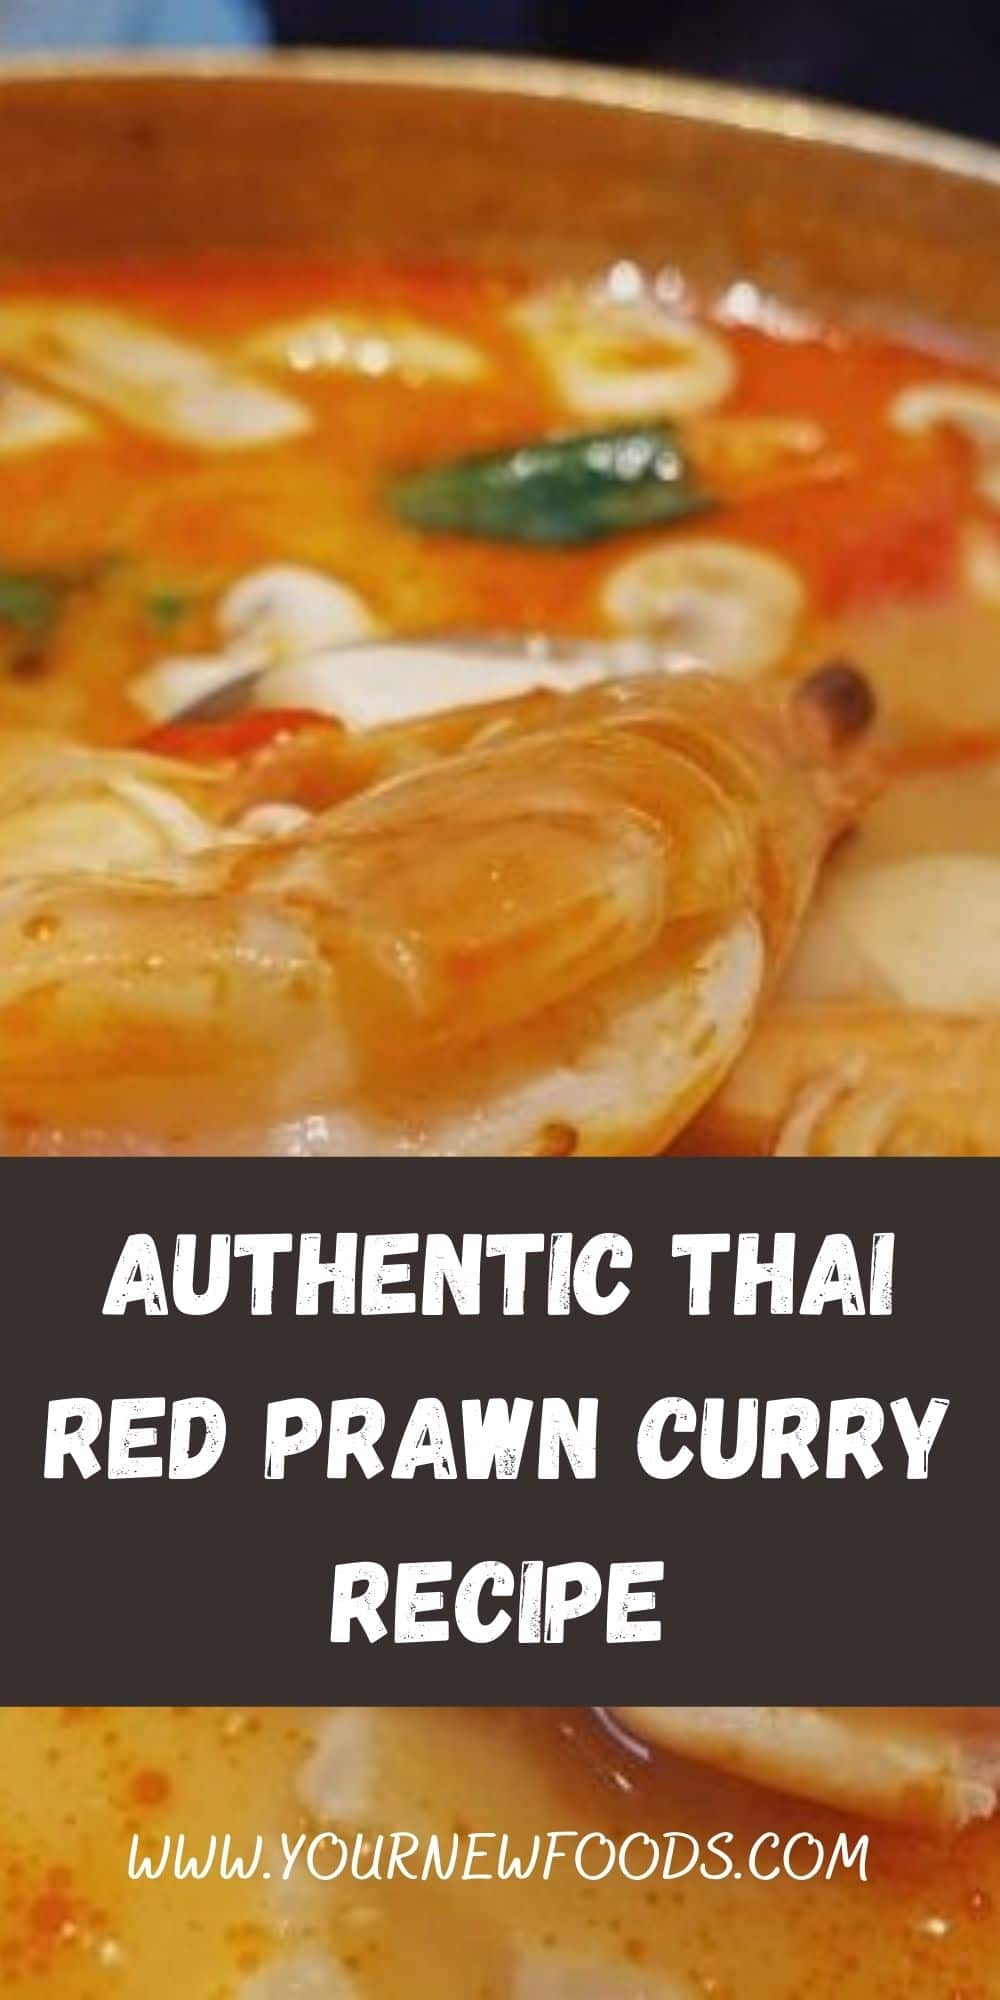 Authentic Thai Red Prawn Curry